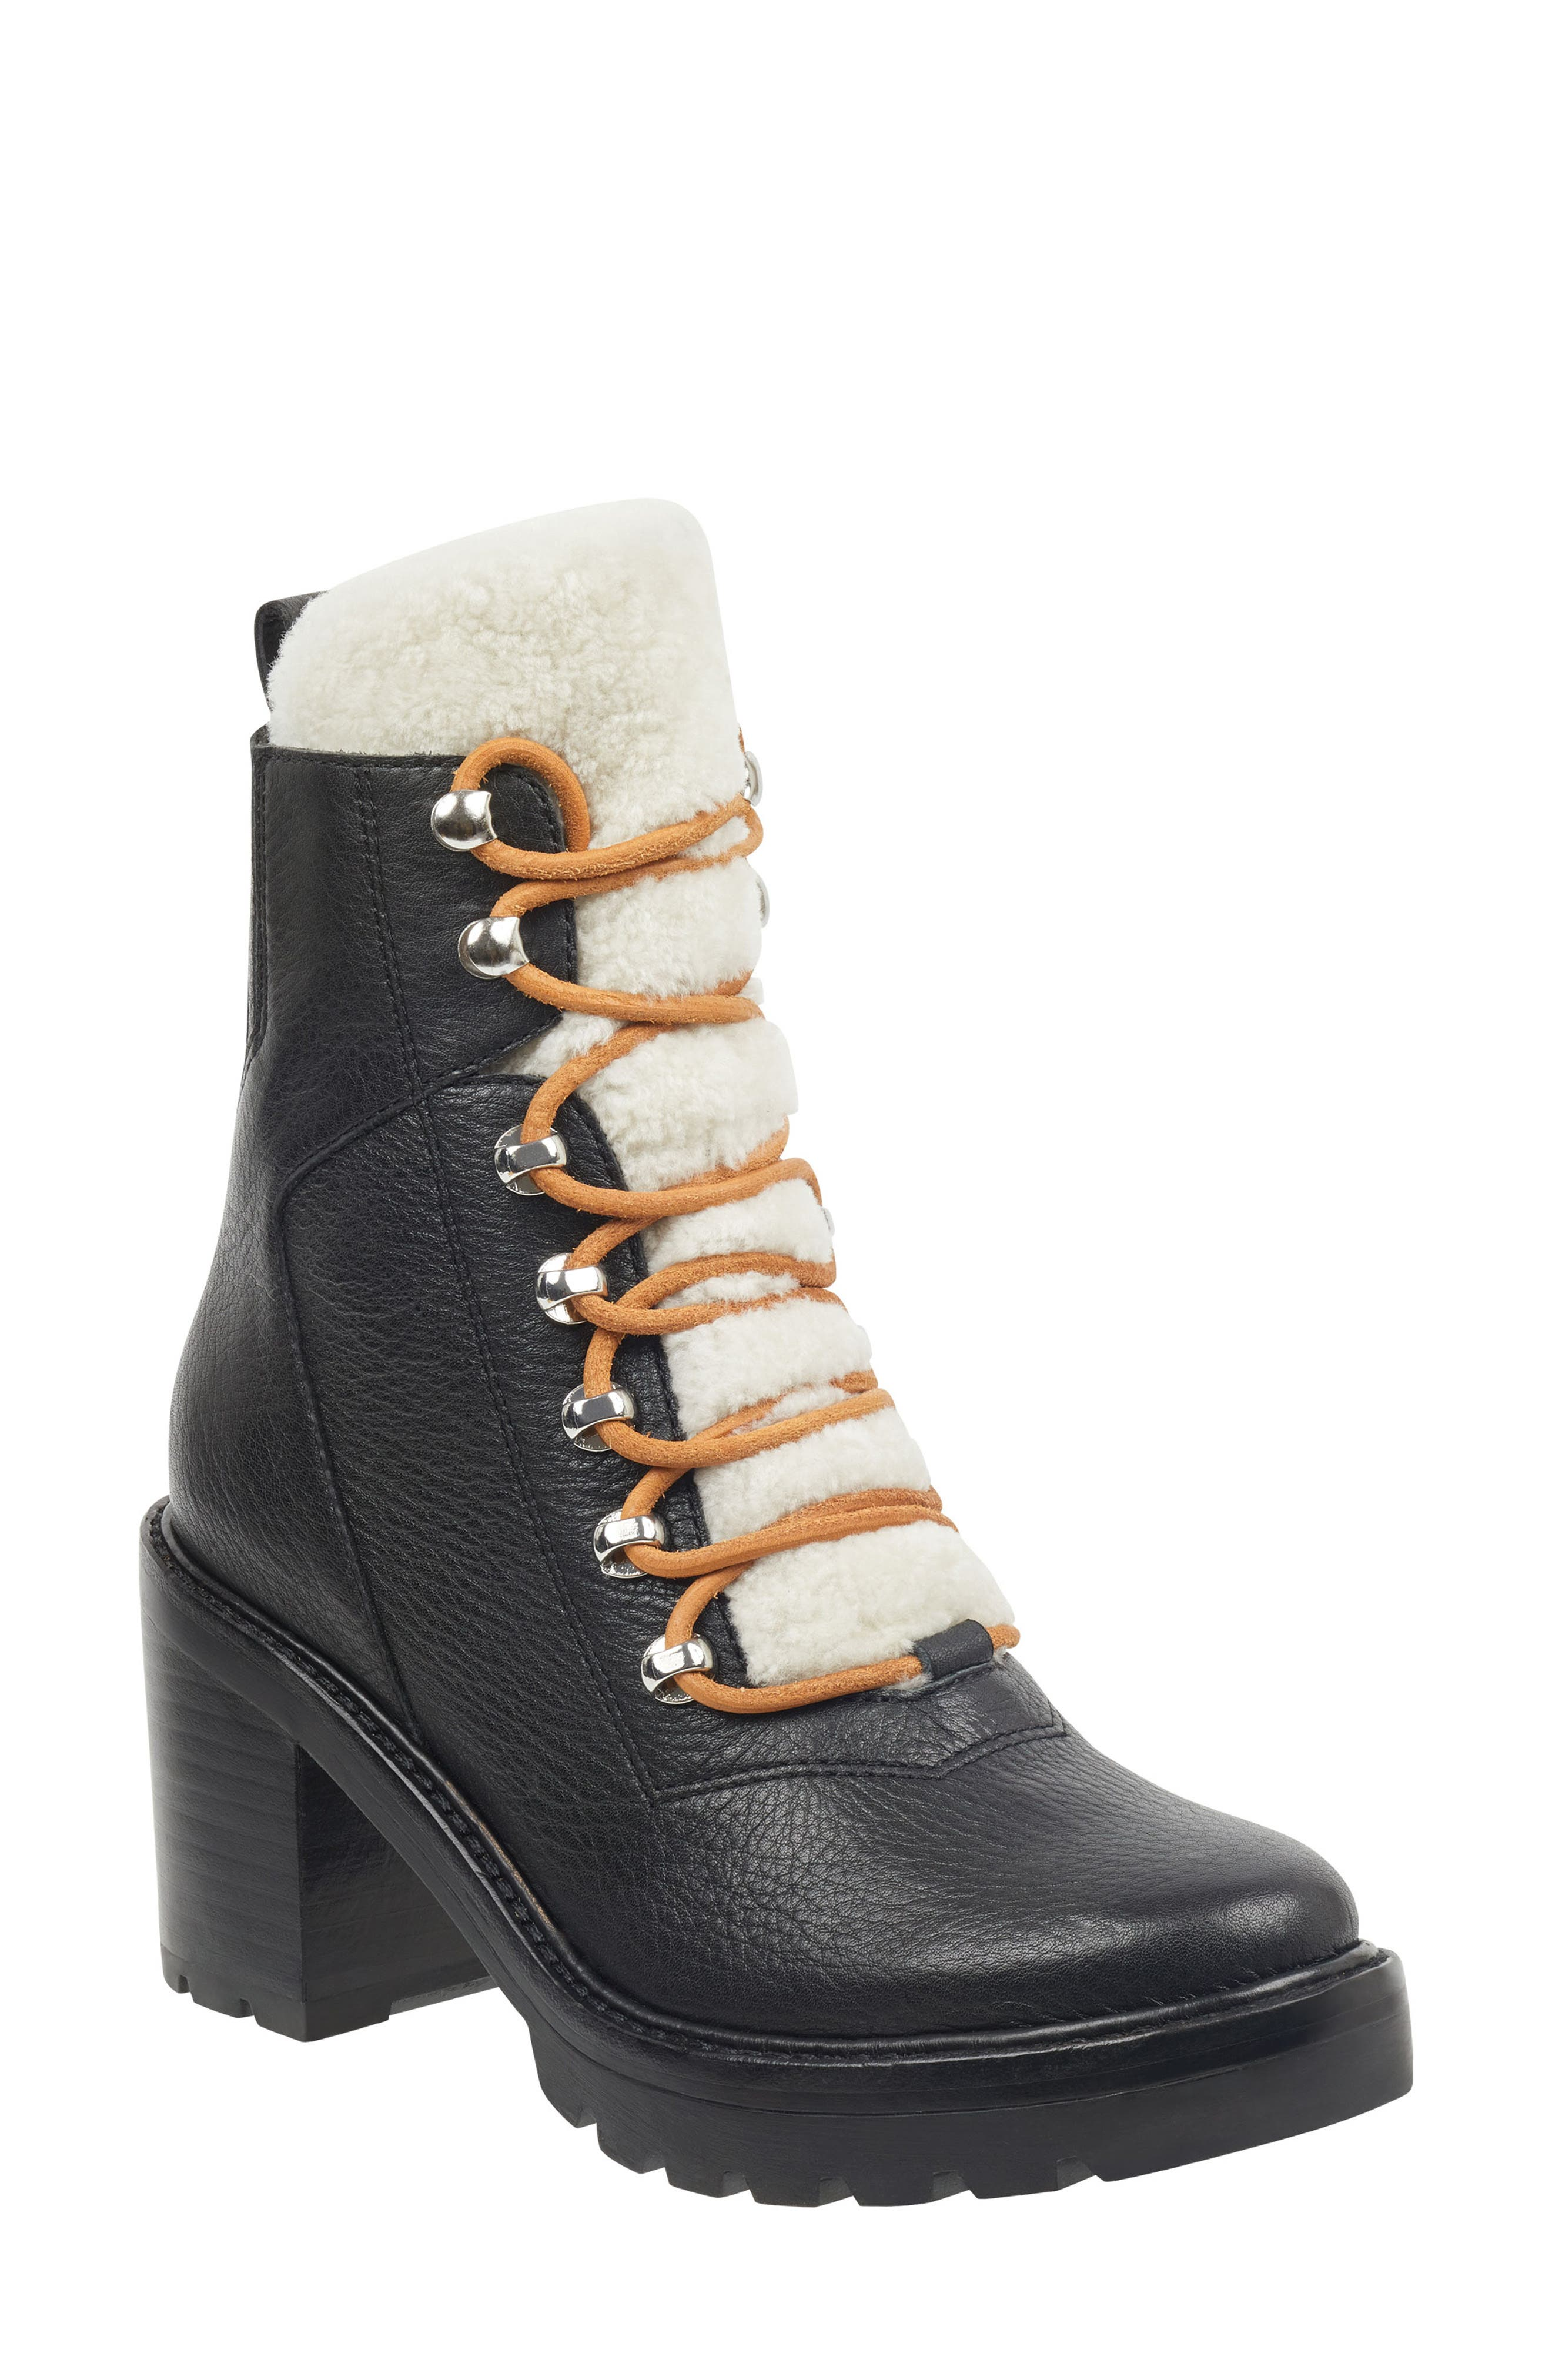 Denise Combat Boot,                         Main,                         color, BLACK/ NATURAL LEATHER